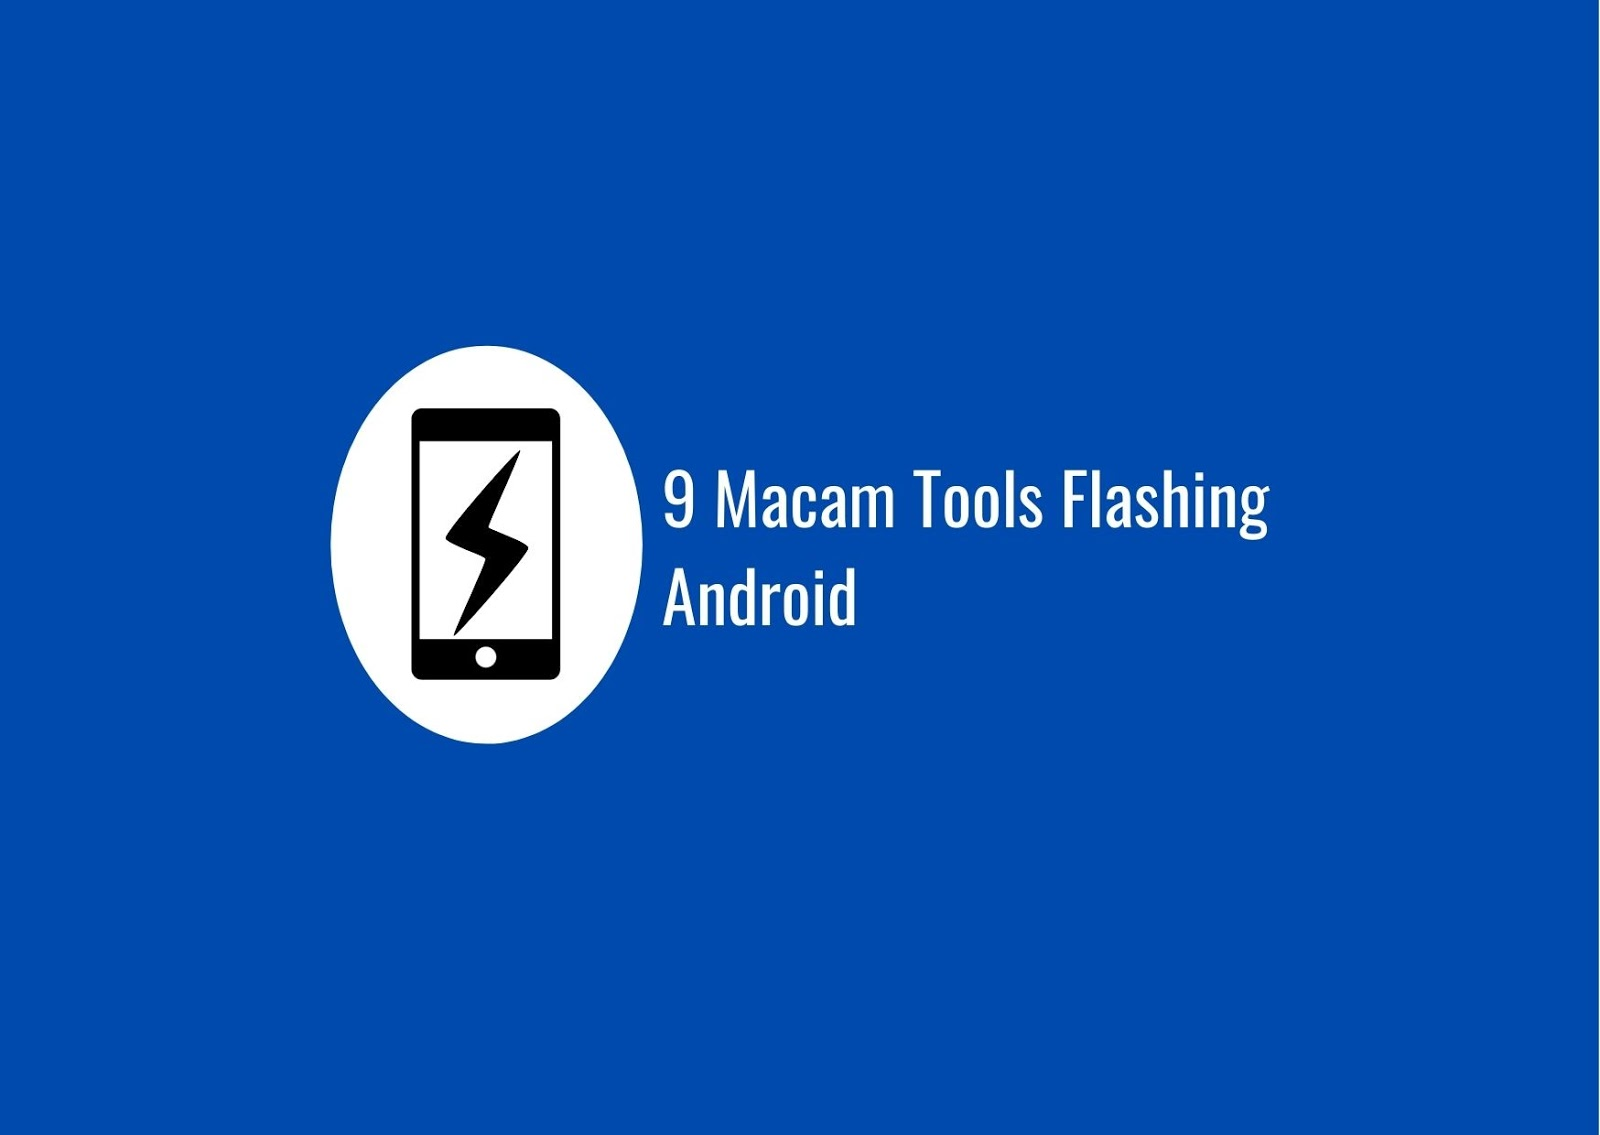 9 Macam Tools Flashing Android